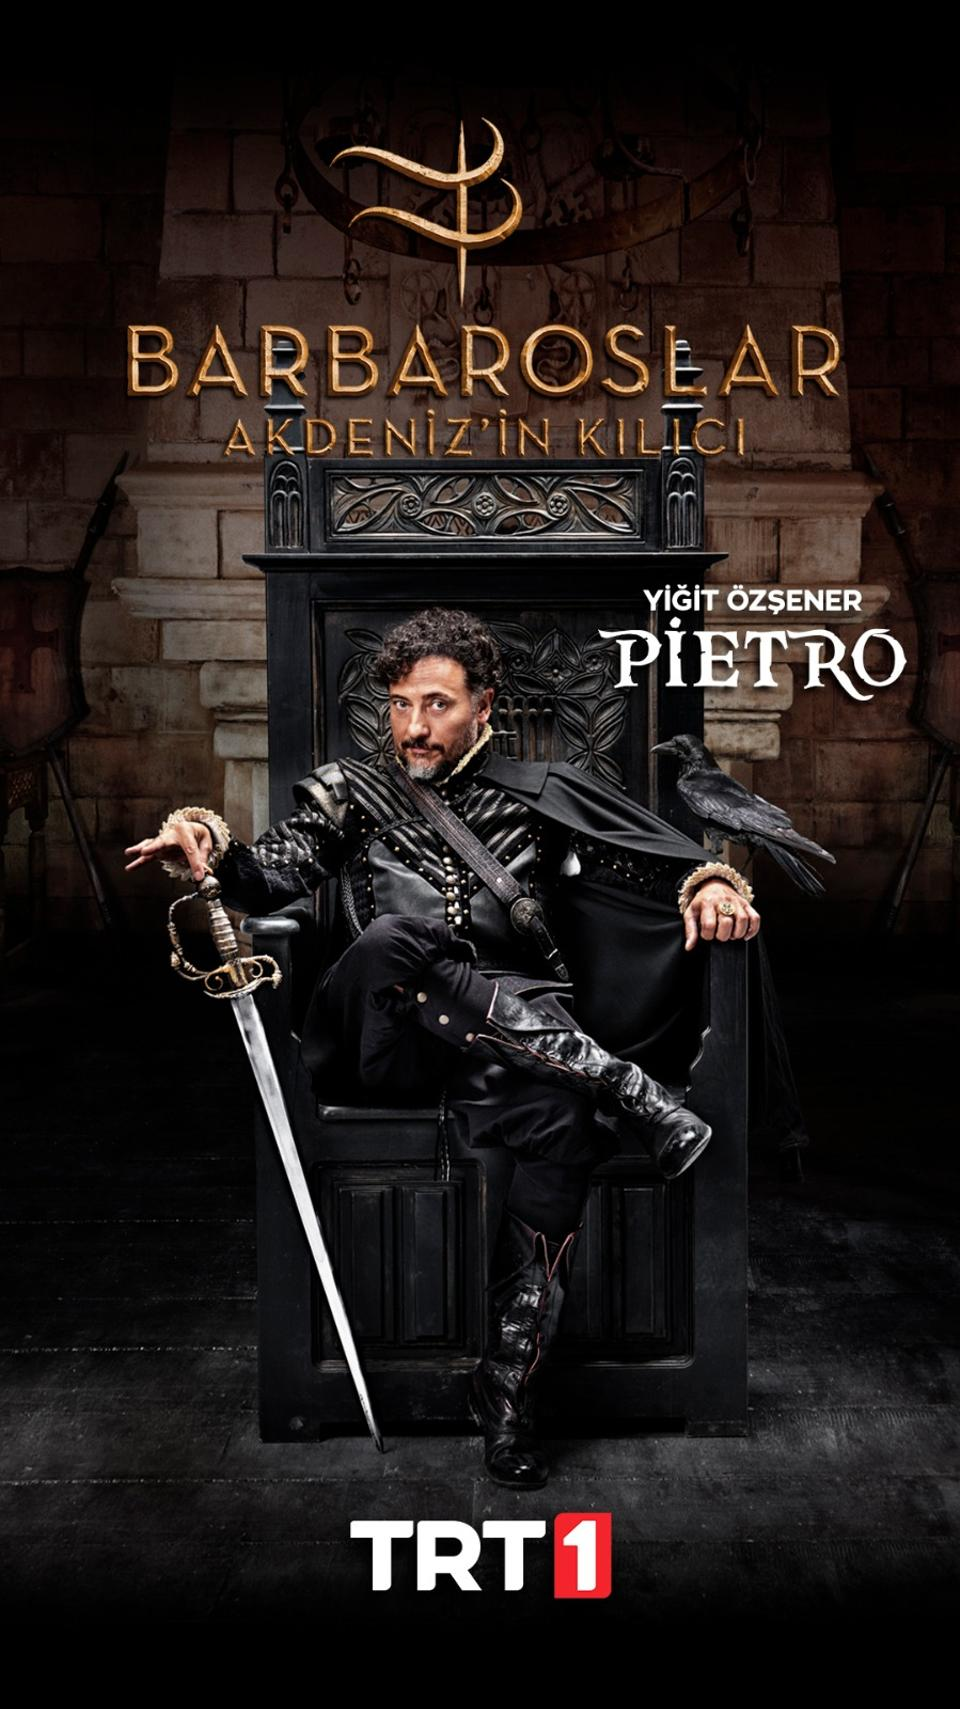 Pietro is after the same secret that Hizir is after; he makes a fine villain, too.